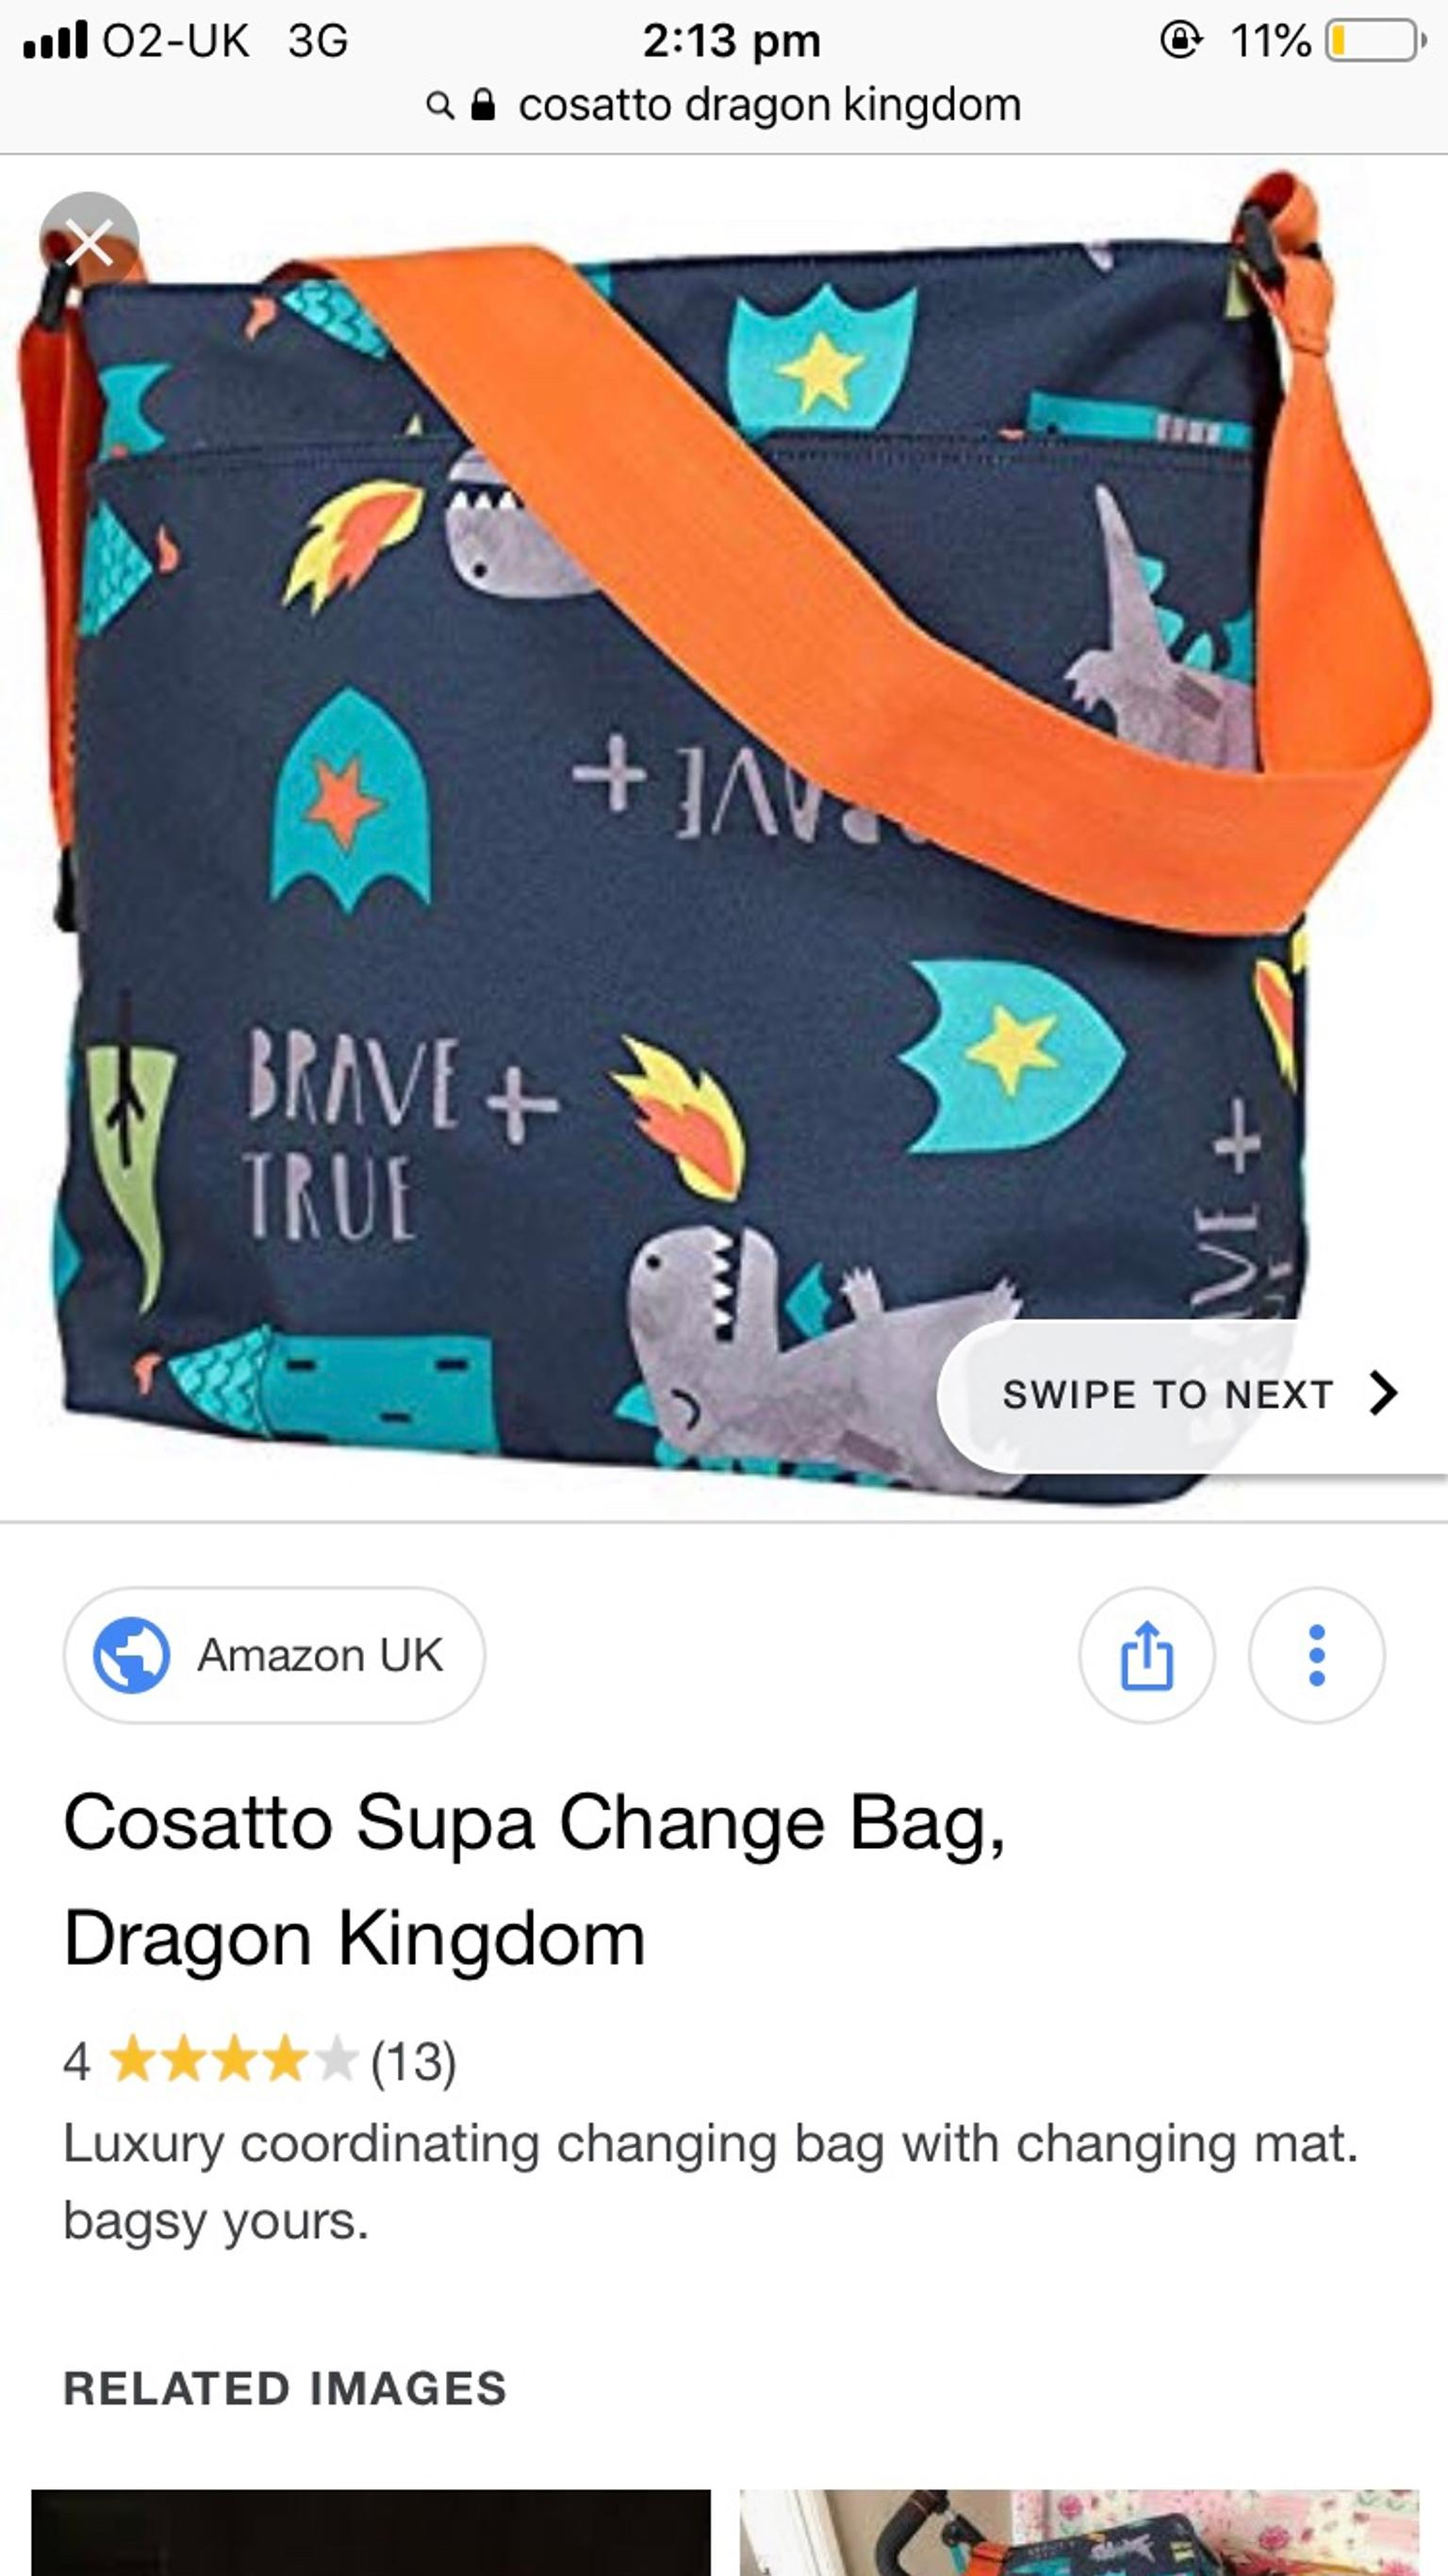 Dragon Kingdom Cosatto Supa Change Bag